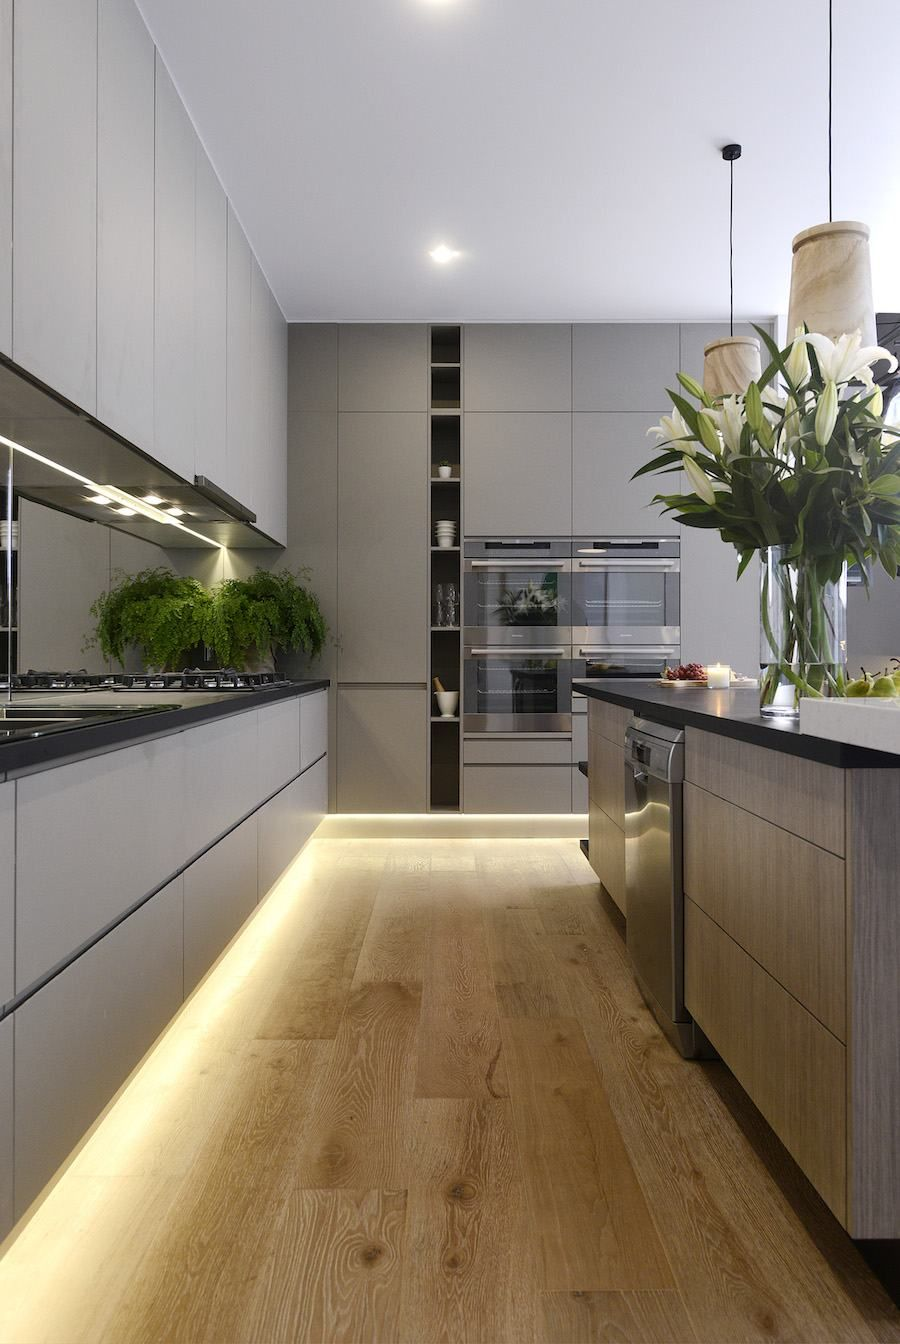 Pin by alee barros on decor pinterest kitchens kitchen